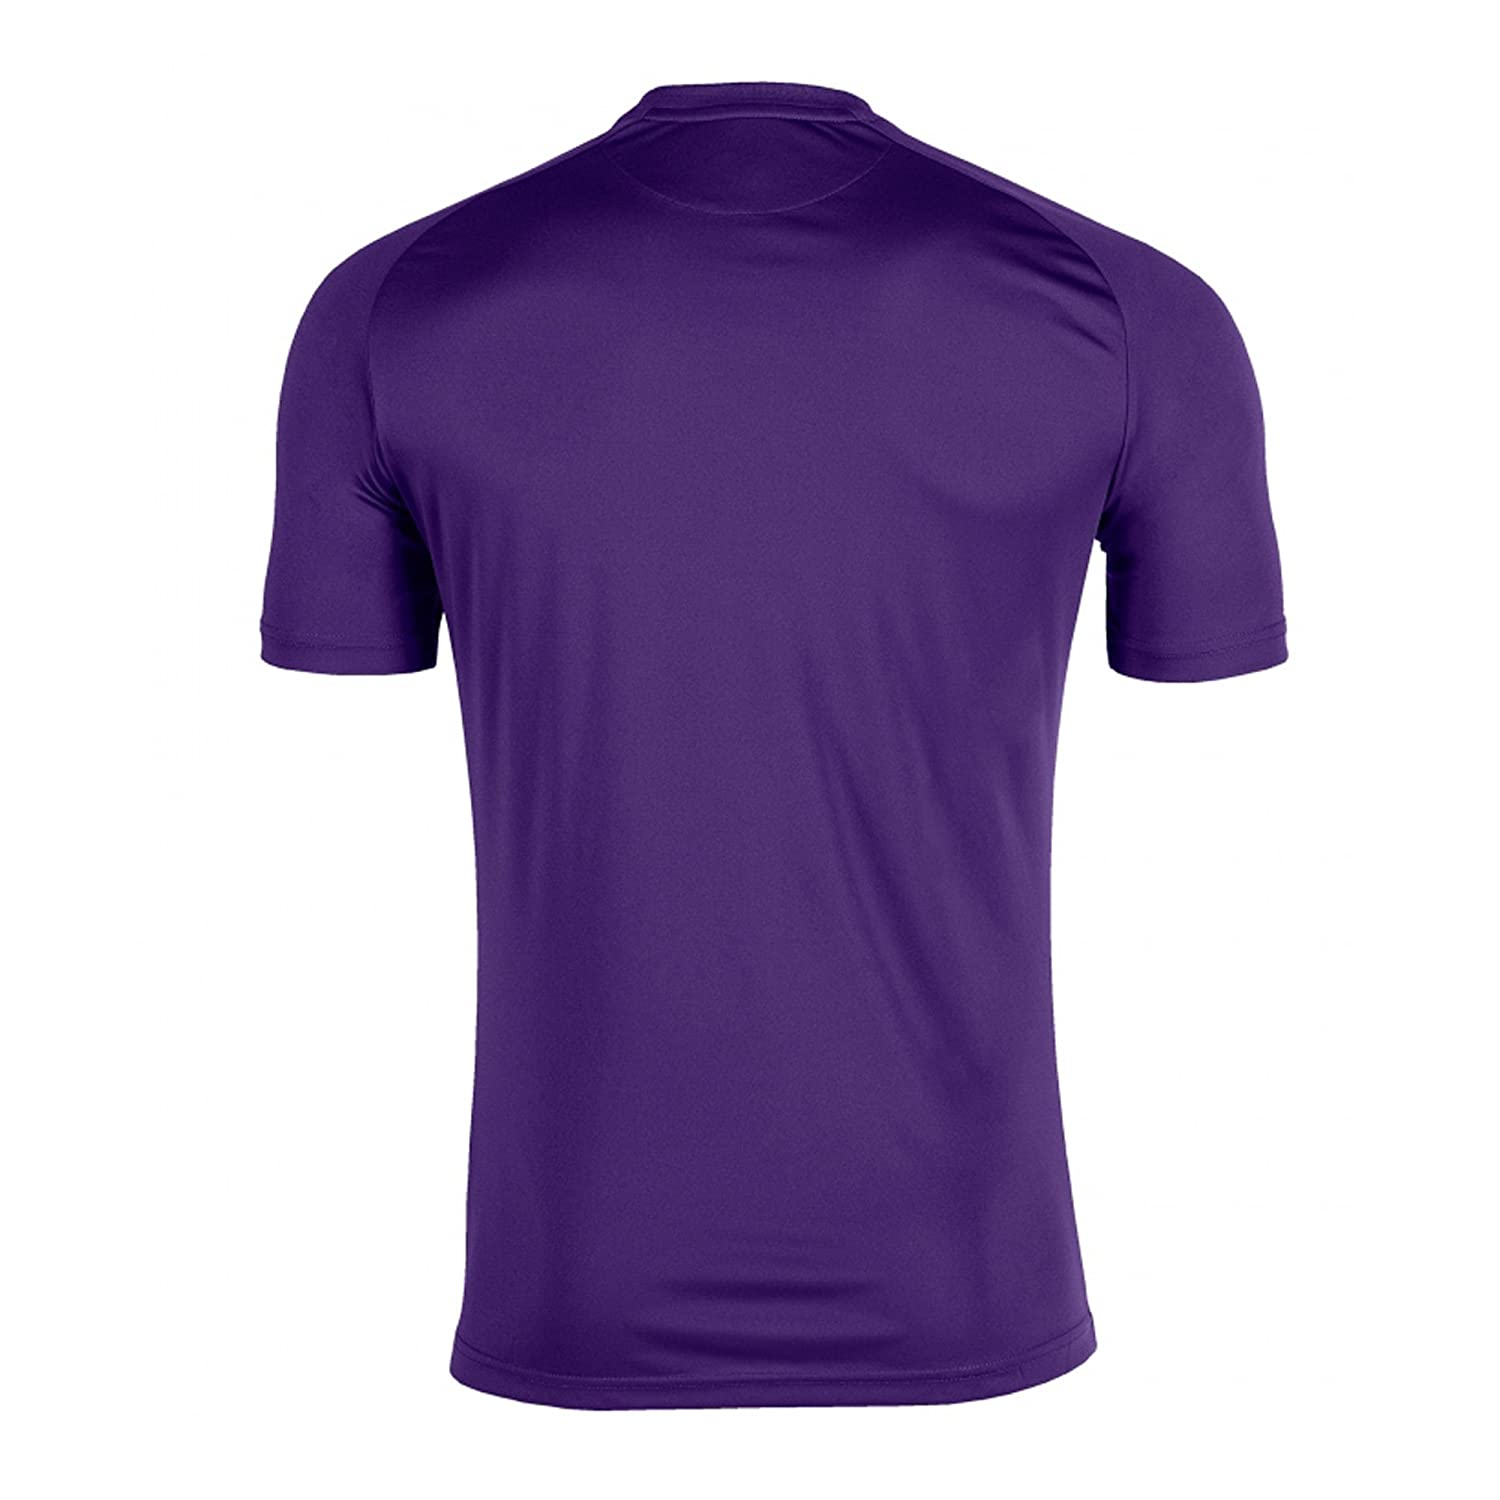 Amazon.com : Joma T-SHIRT TIGER M/C PURPLE Fashion MAGLIETTA UOMO : Sports & Outdoors